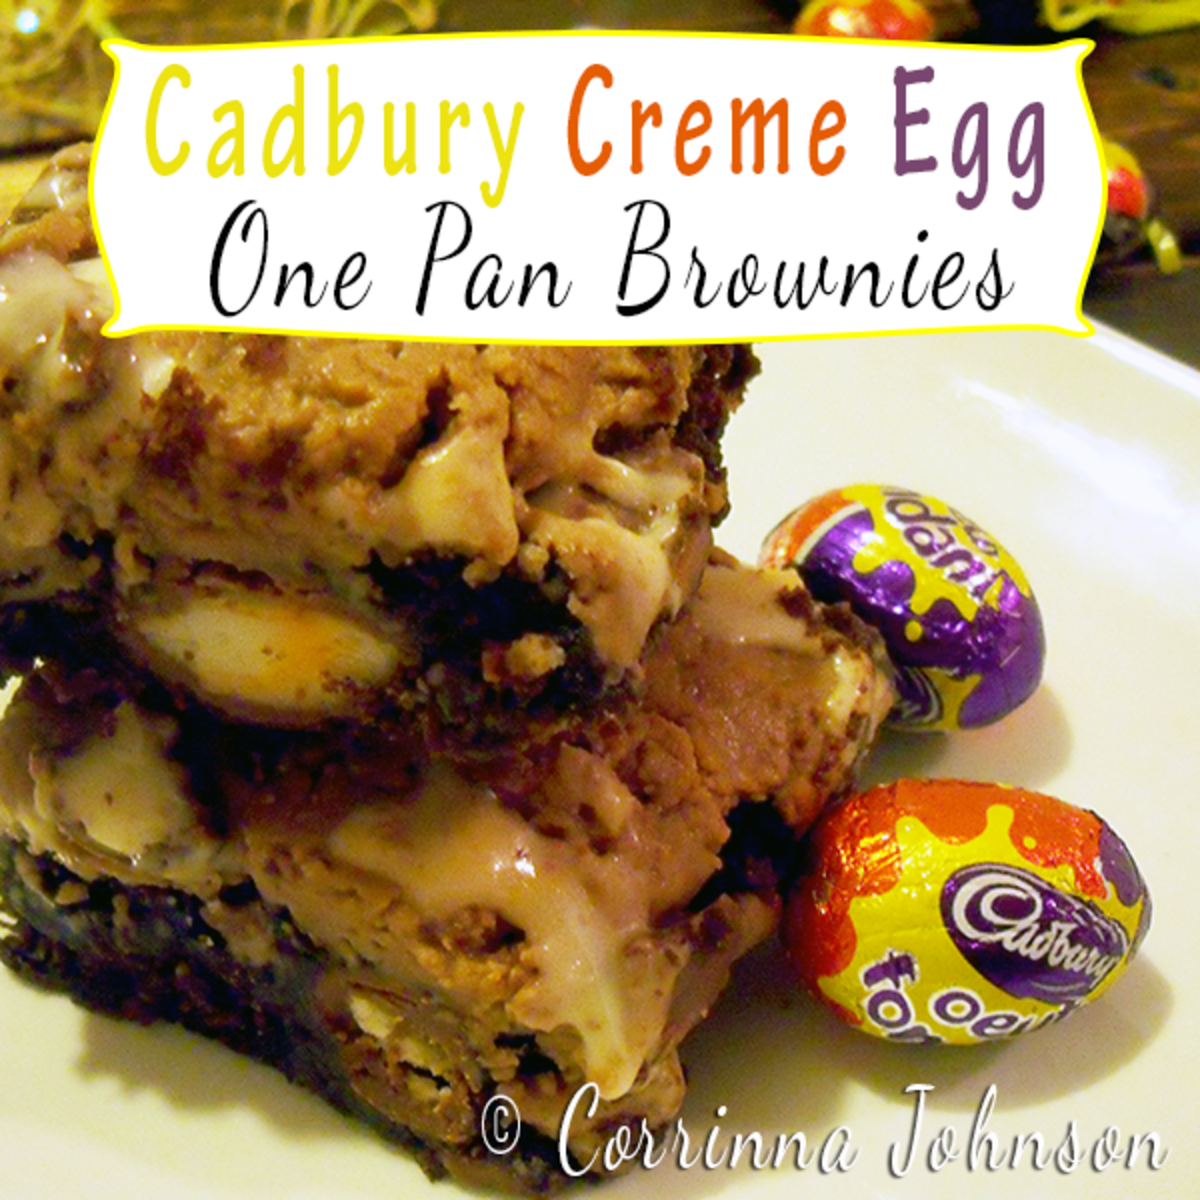 Cadbury Creme Egg One-Pan Brownies